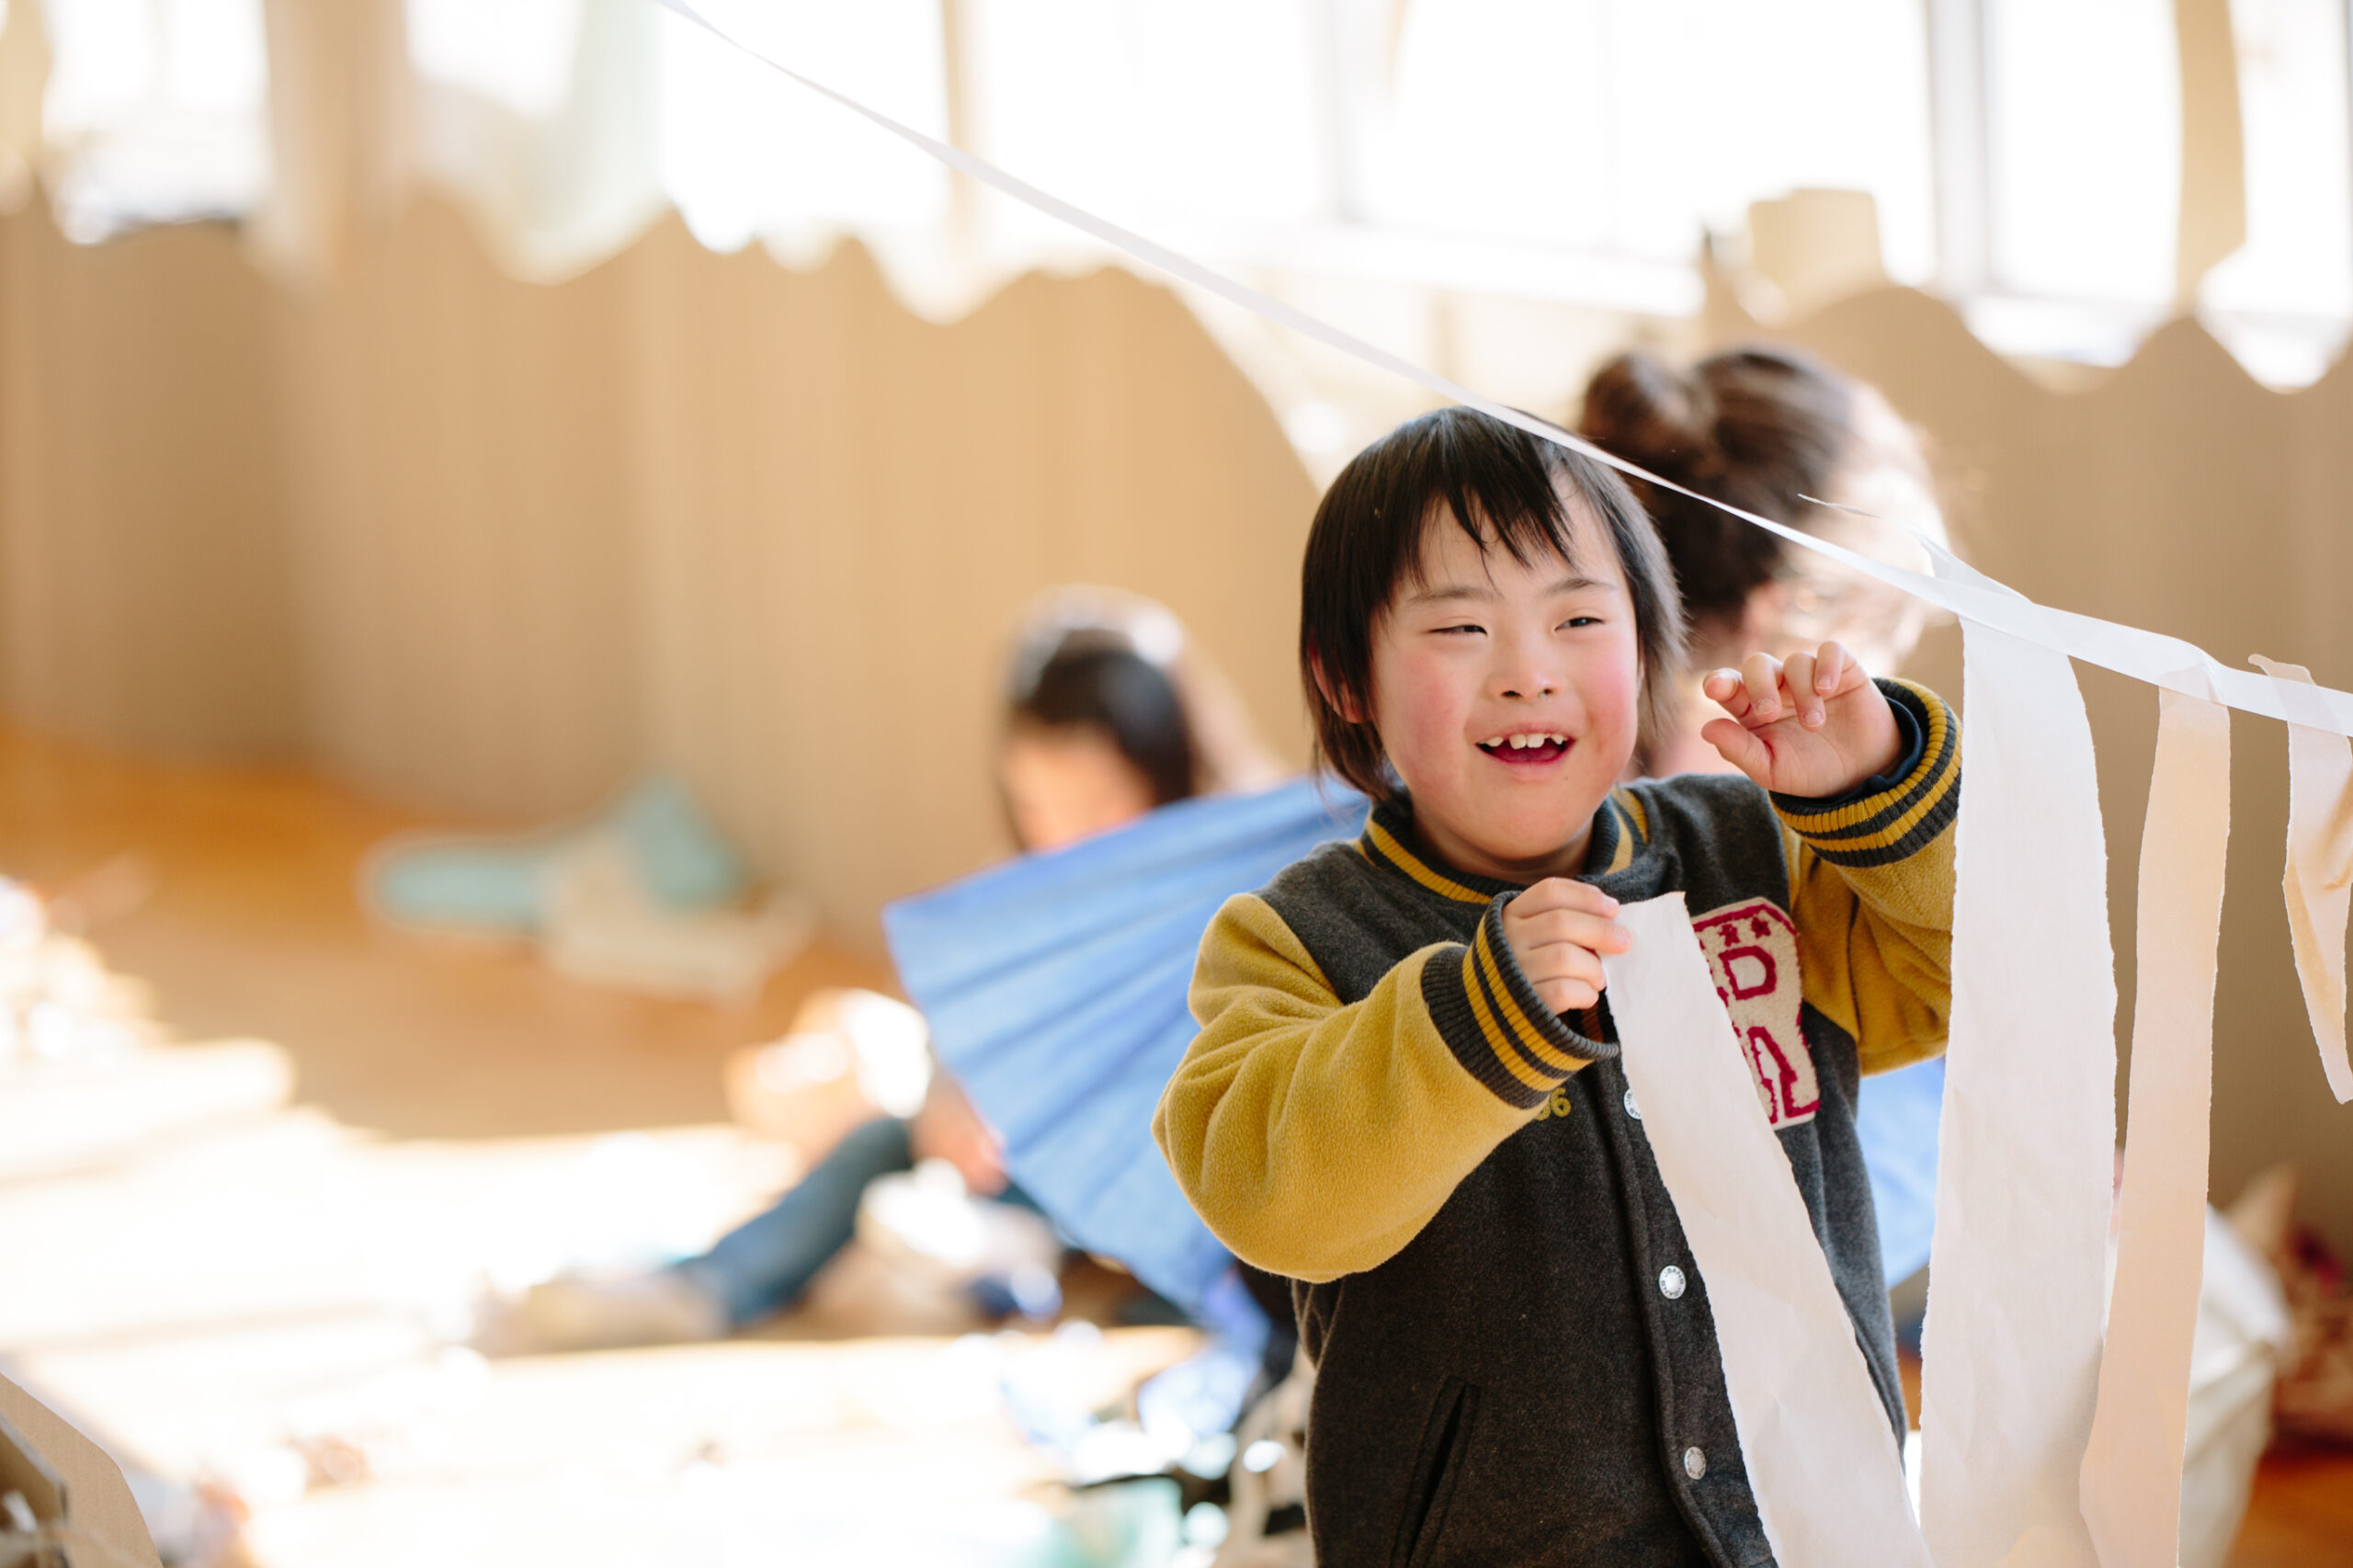 A Paper Planet production photo from Japan. A child with dark hair, wearing a black and yellow baseball jacket, joyfully hangs long strips of white paper on a suspended piece of tape. A sunlit room lined with brown cardboard and other children creating with paper are visible in the background.